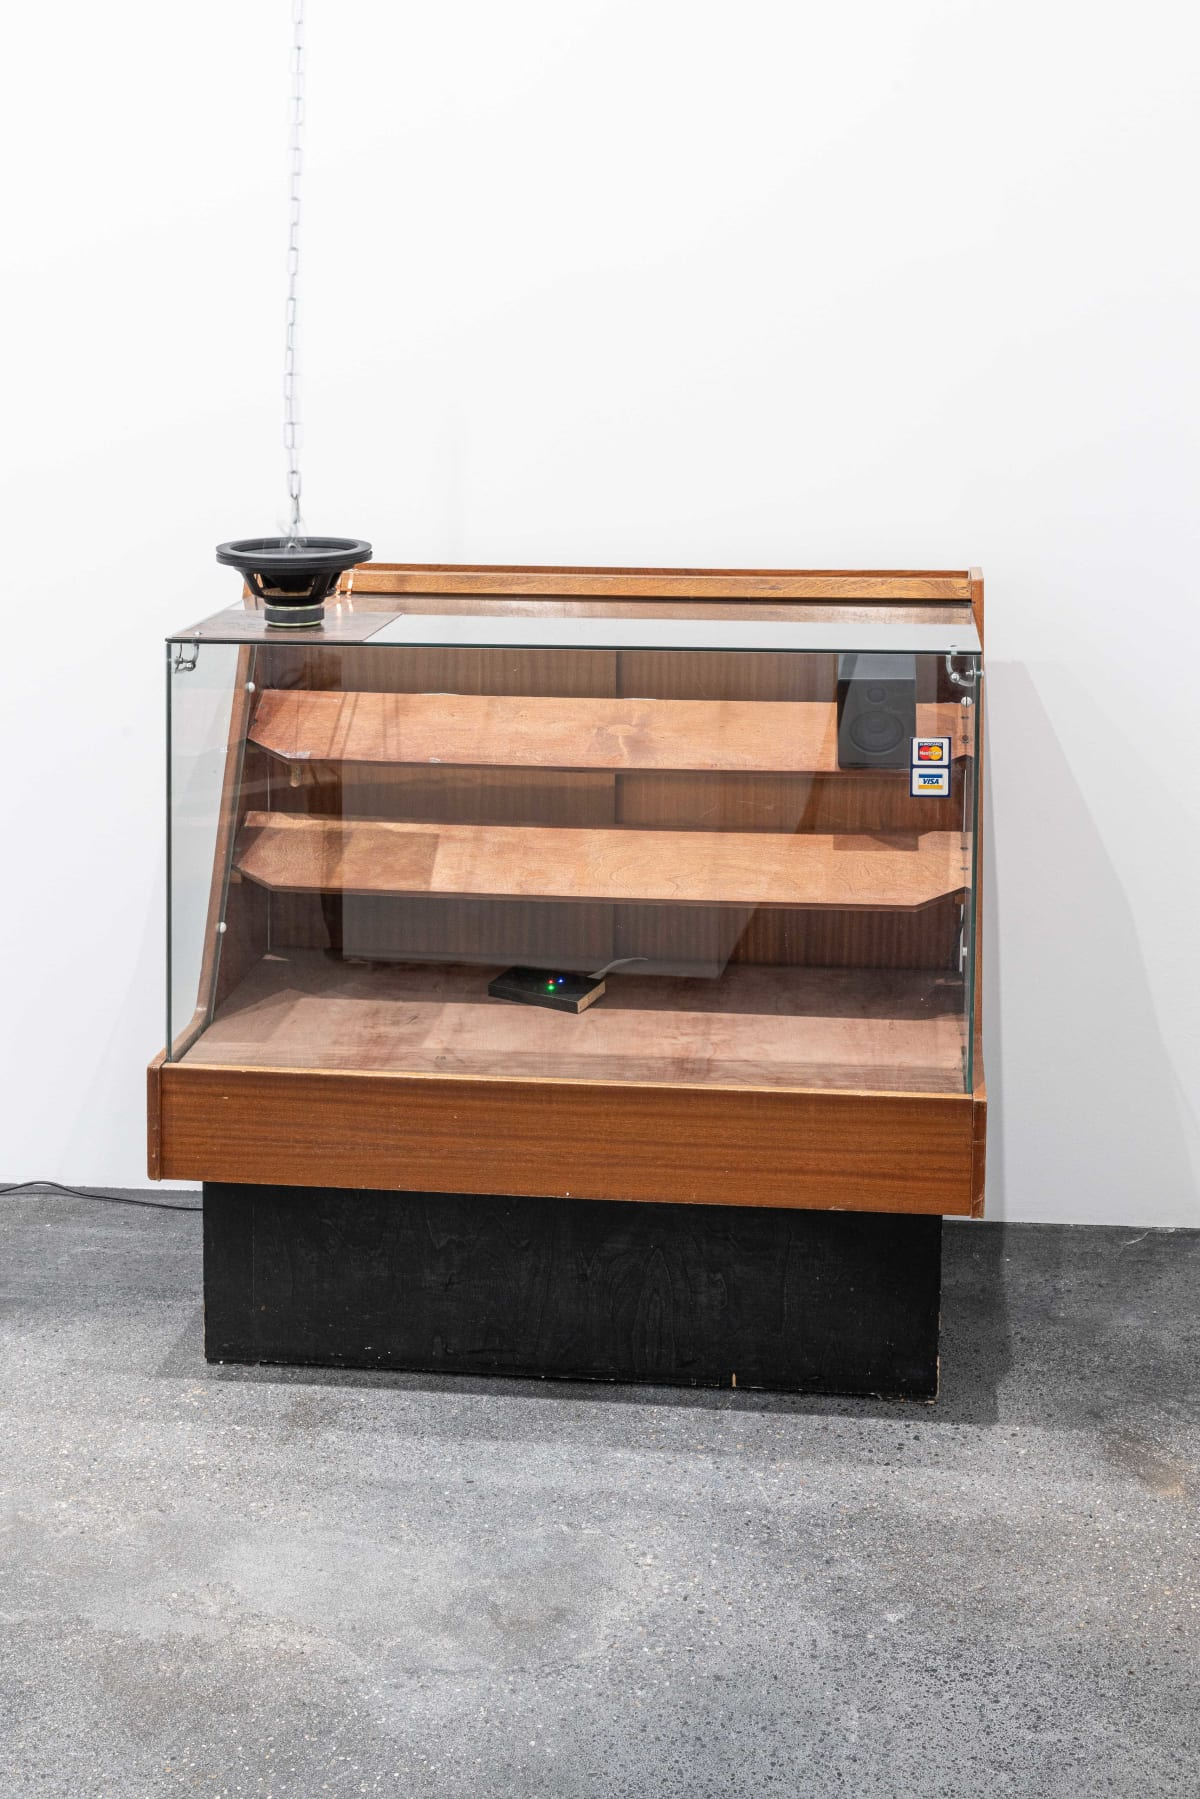 Haroon Mirza, Untitled Song #4, 2012